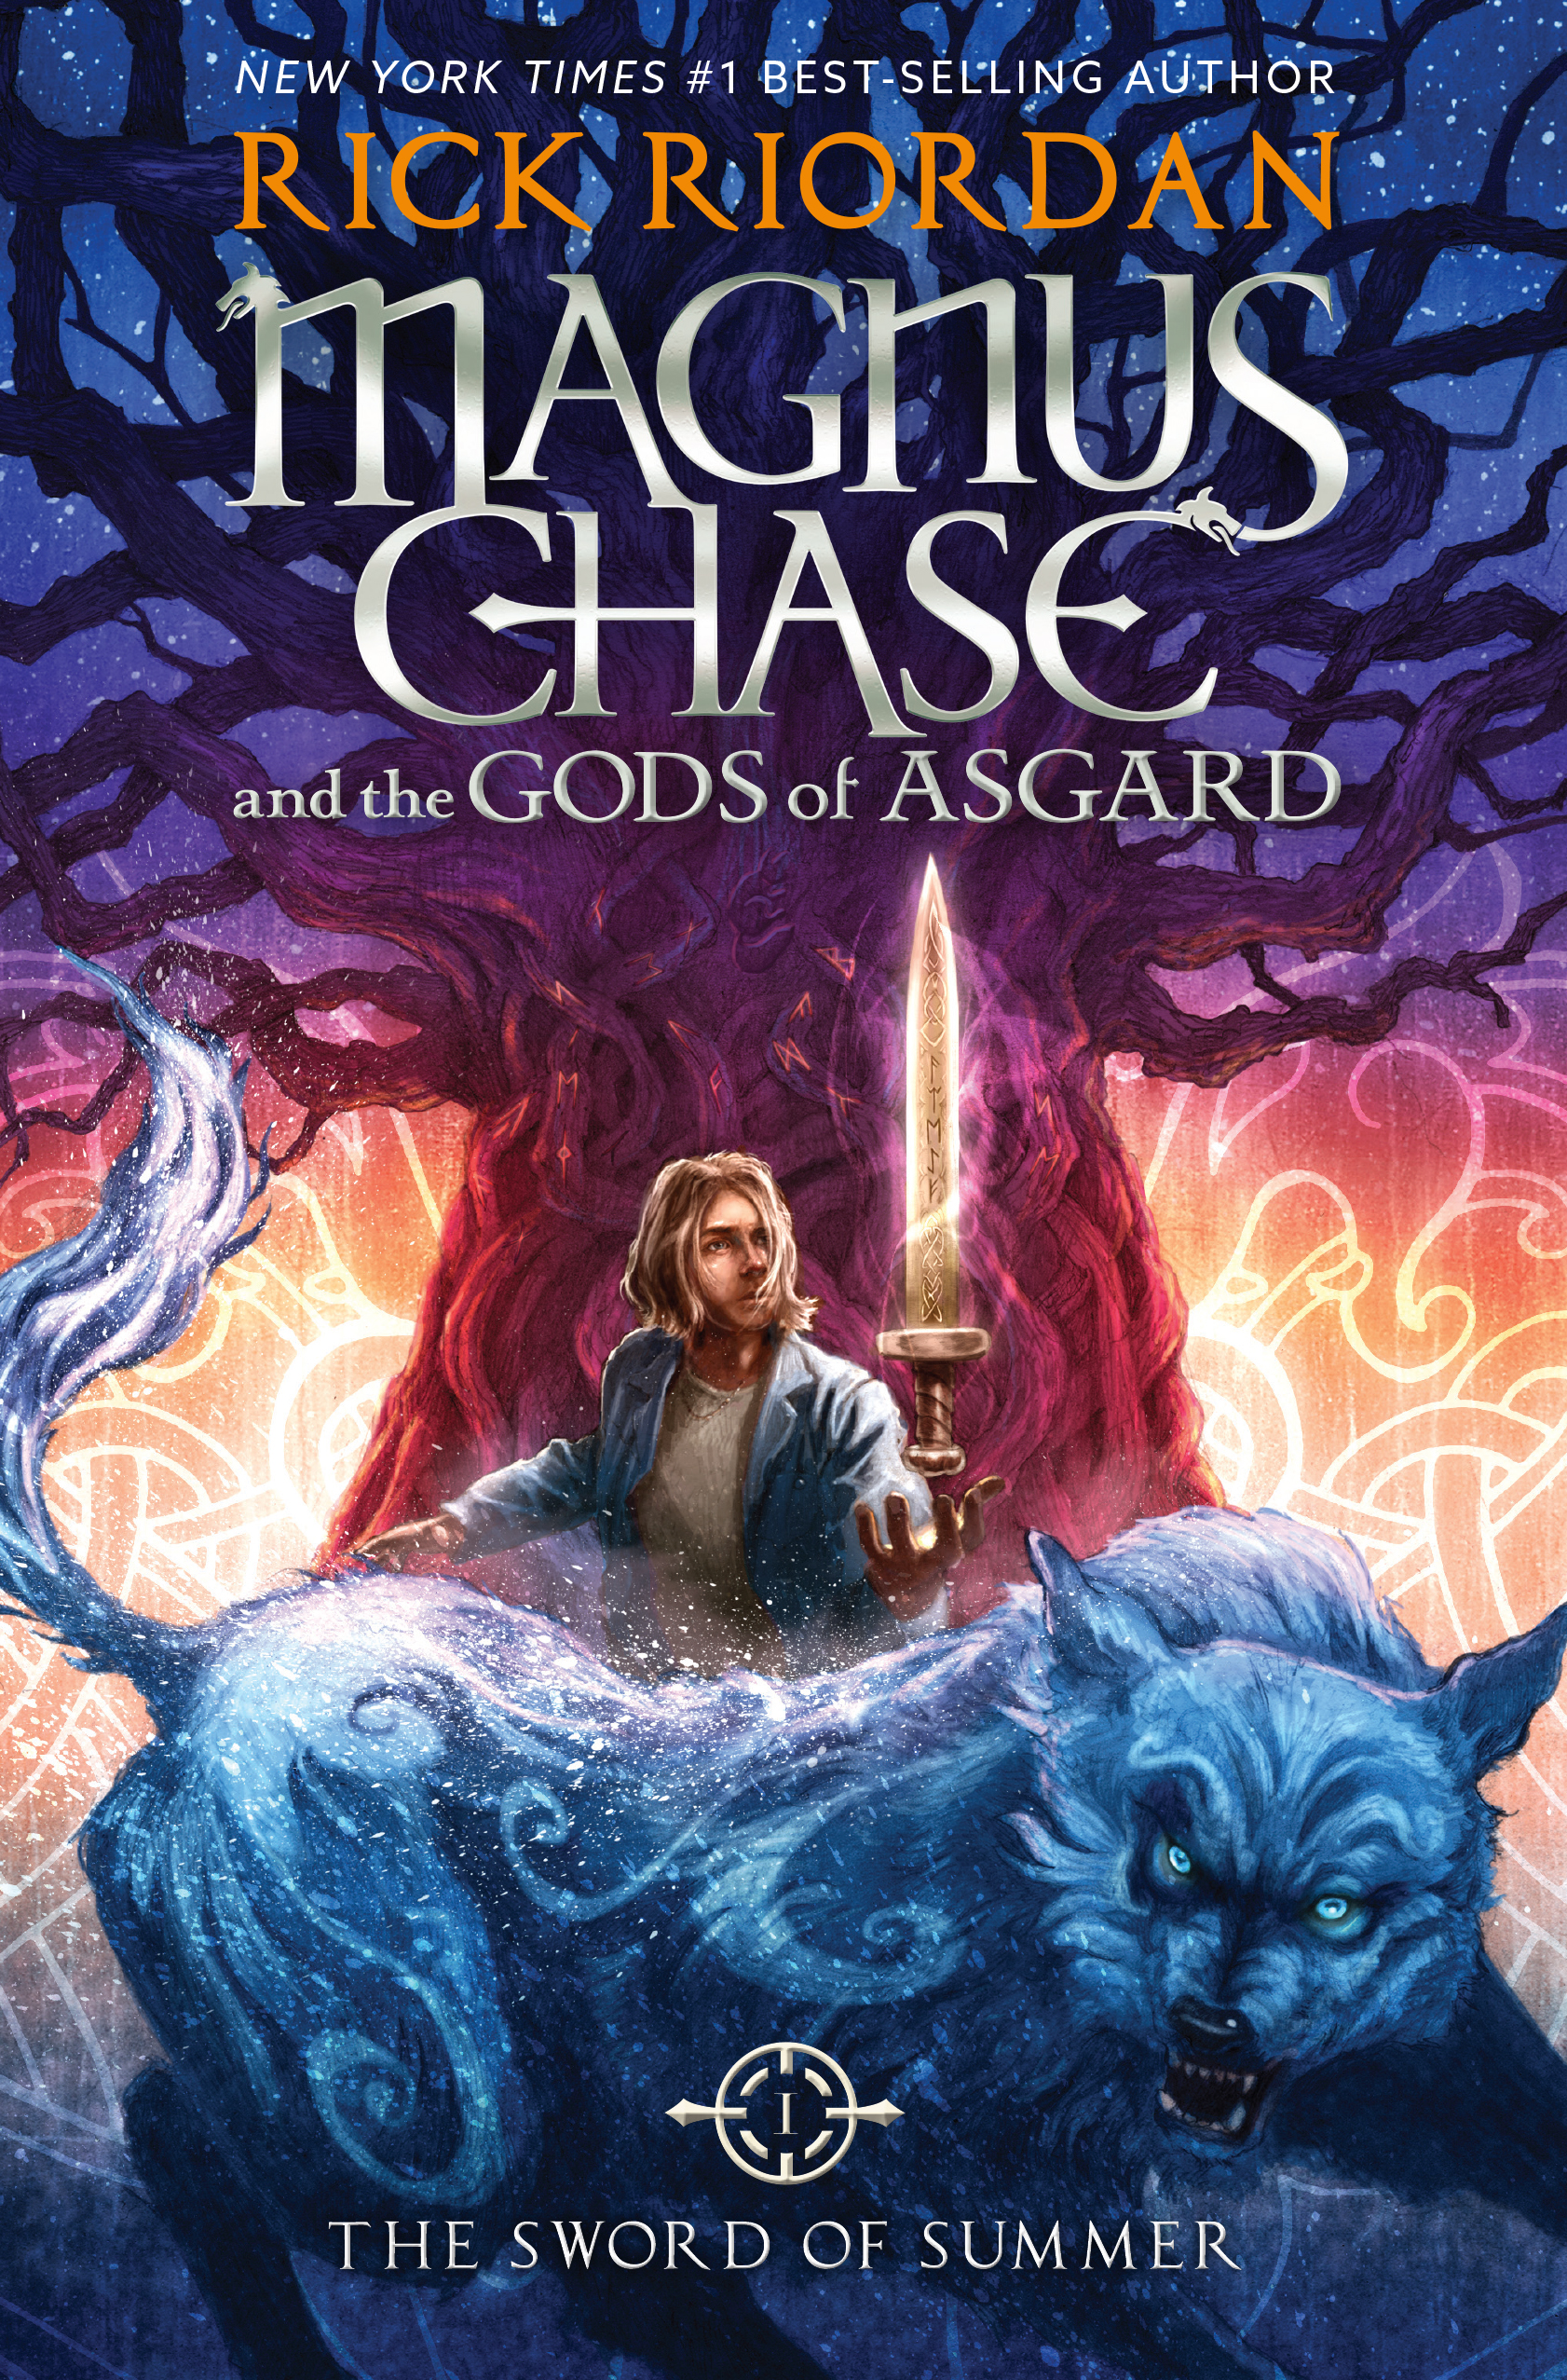 Cover Image of Magnus Chase and the Gods of Asgard, Book 1: The Sword of Summer